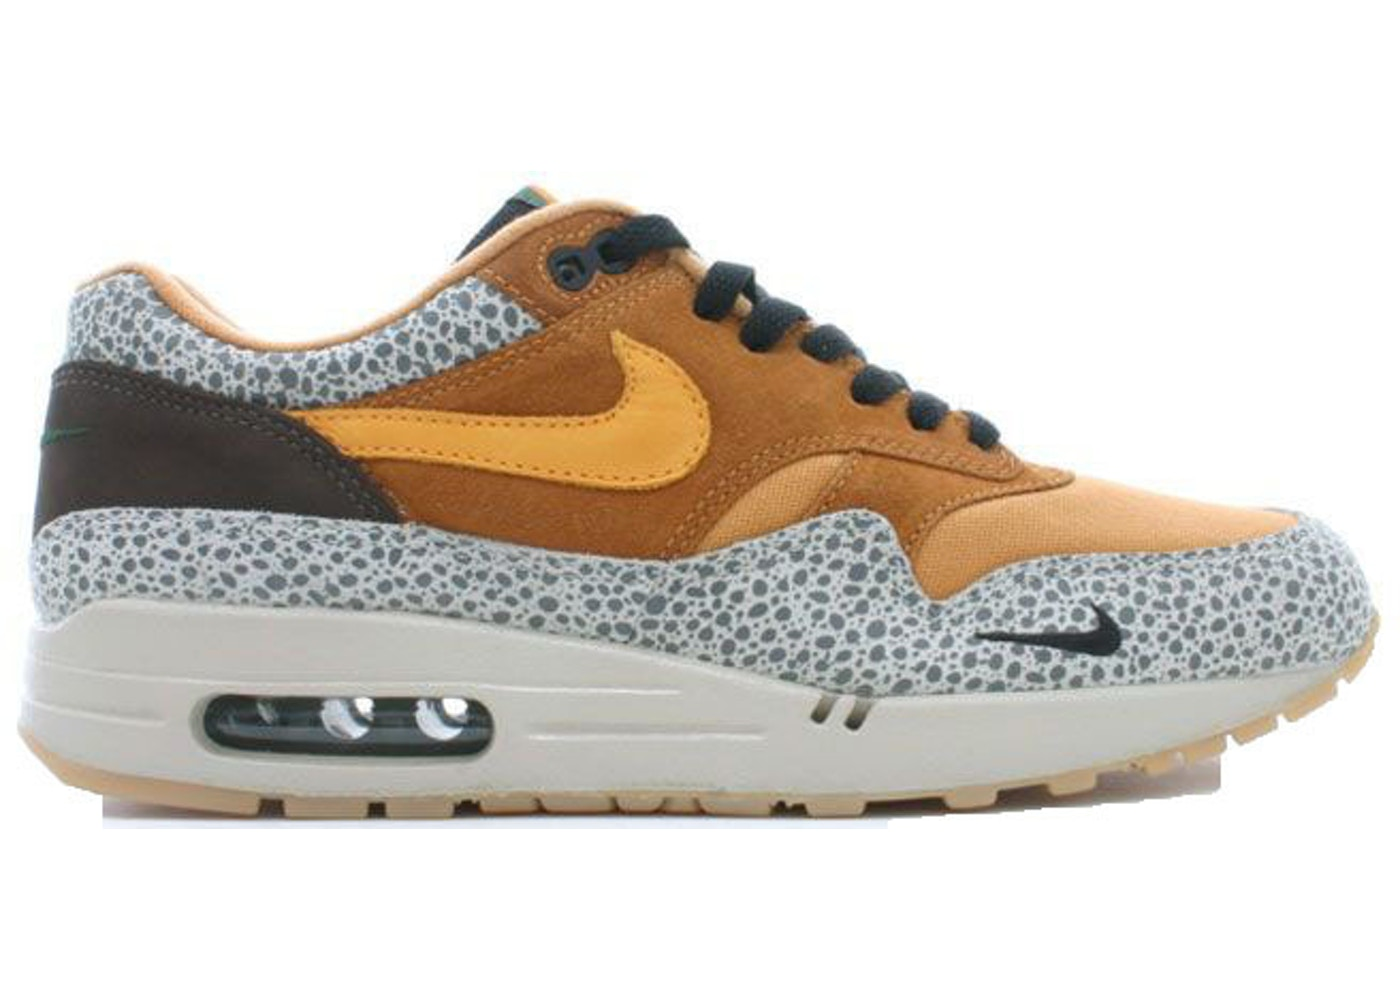 premium selection 67145 ce6a8 Nike Air Max 1 Shoes - Last Sale